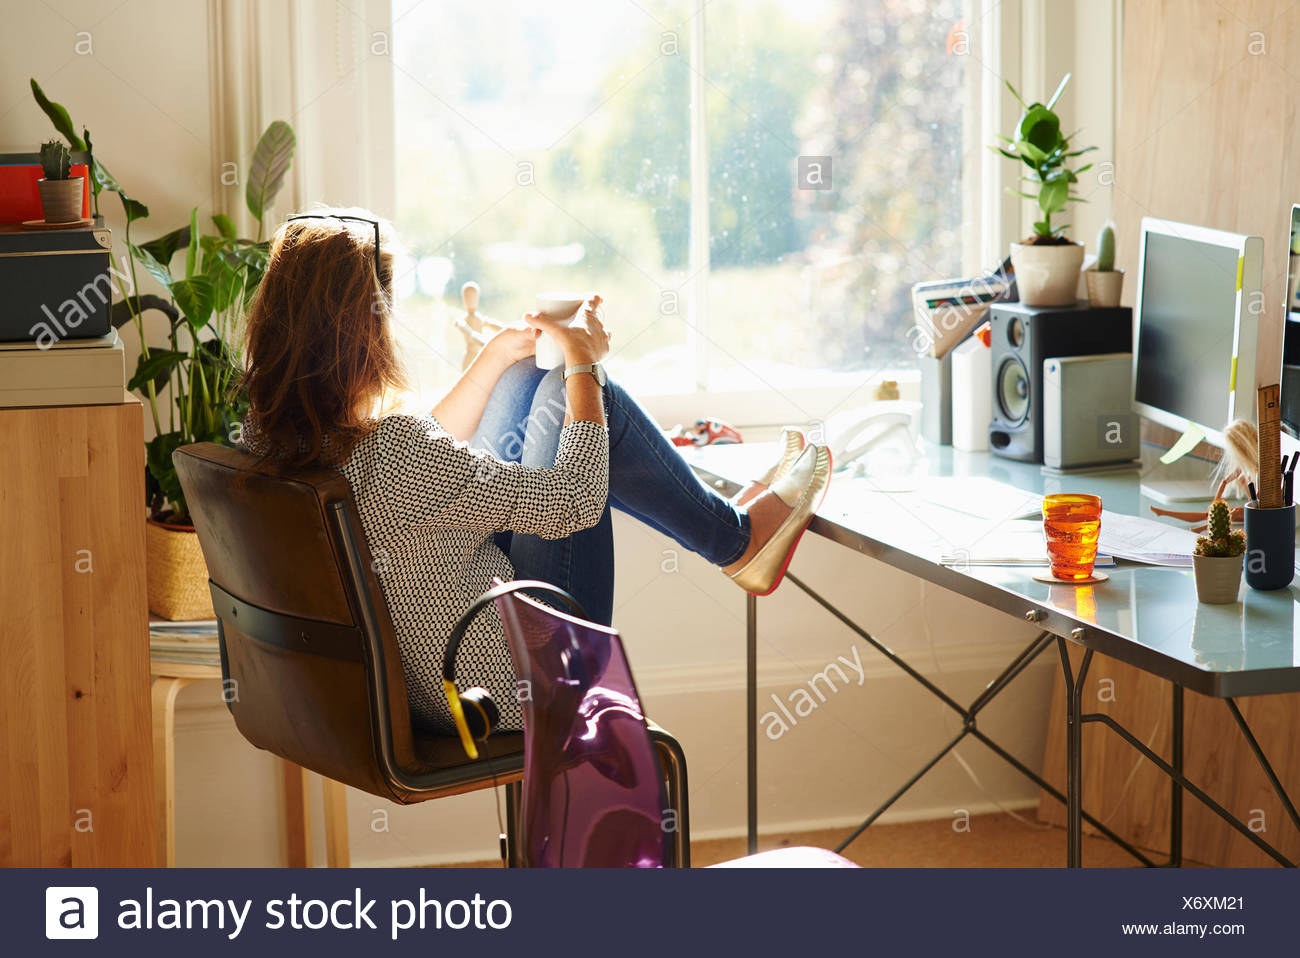 Pensive woman looking through window with feet up on desk in sunny home office - Stock Image